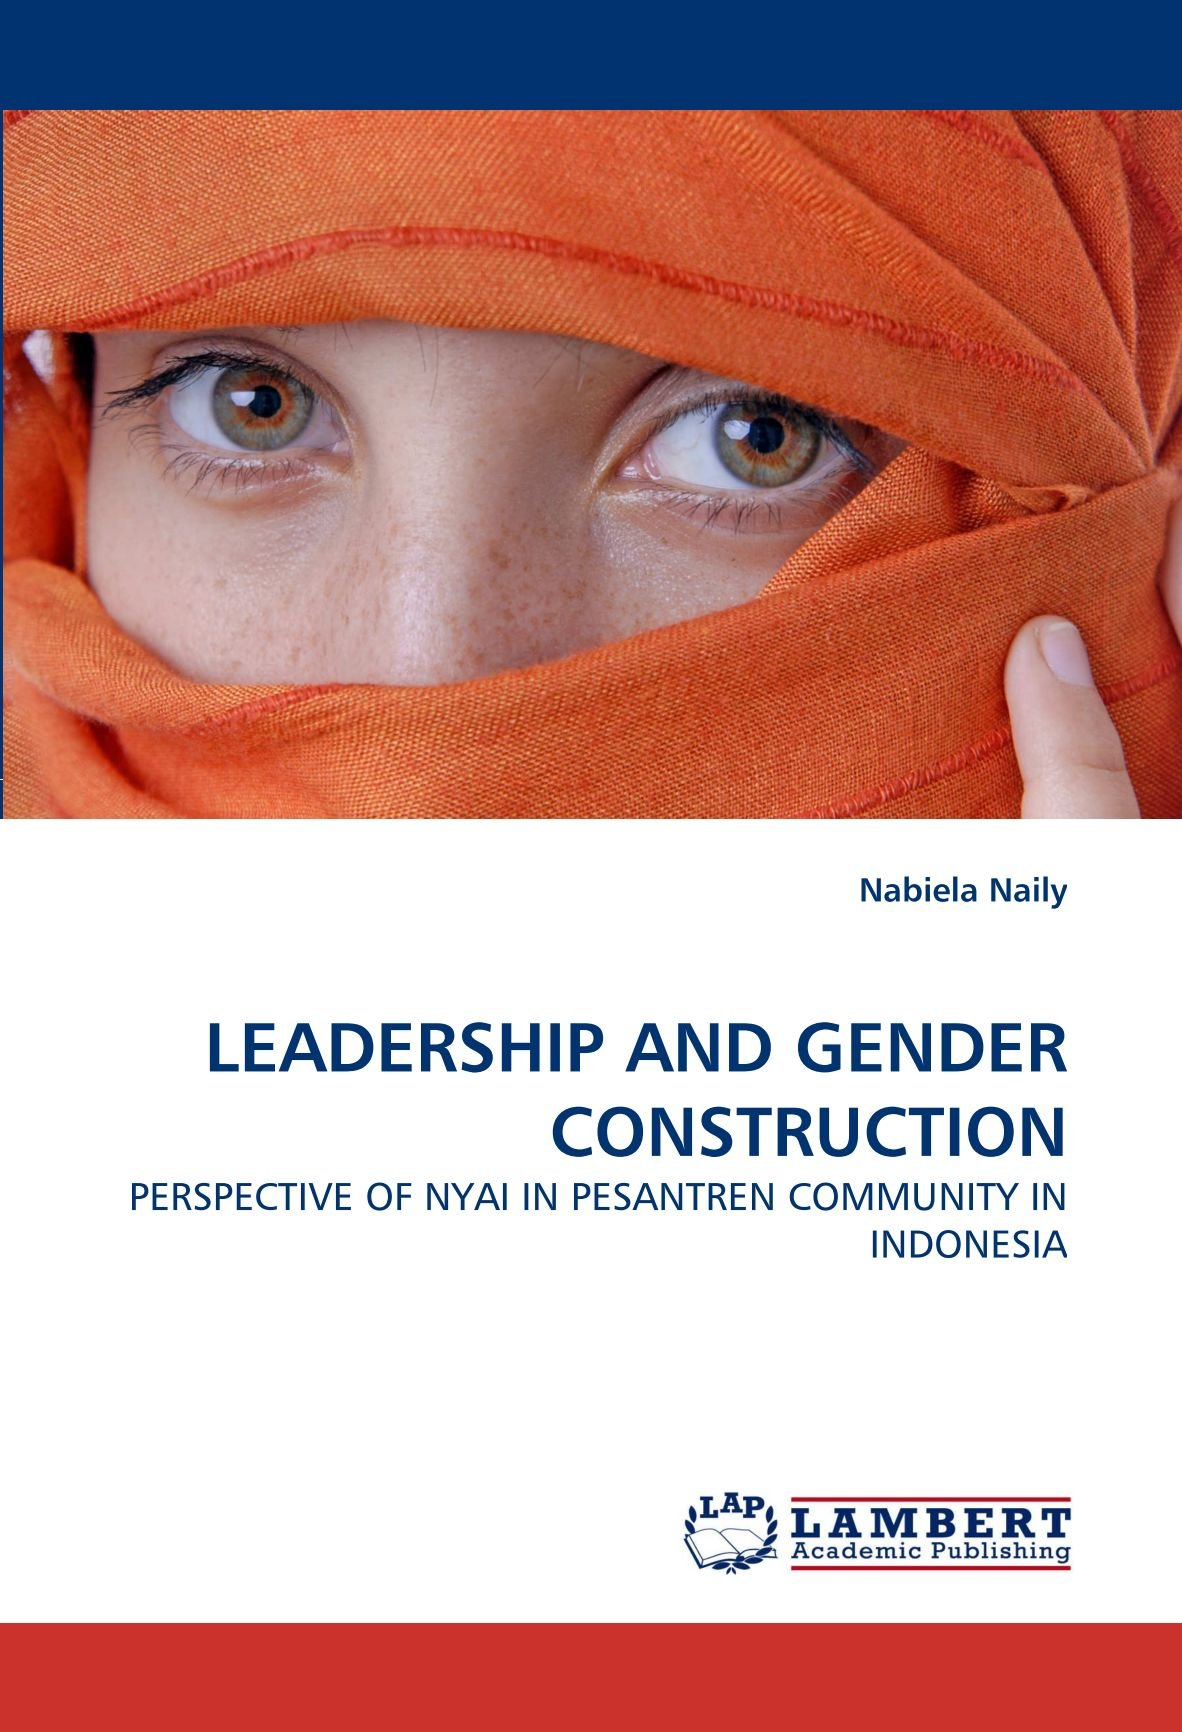 LEADERSHIP AND GENDER CONSTRUCTION: PERSPECTIVE OF NYAI IN PESANTREN COMMUNITY IN INDONESIA pdf epub